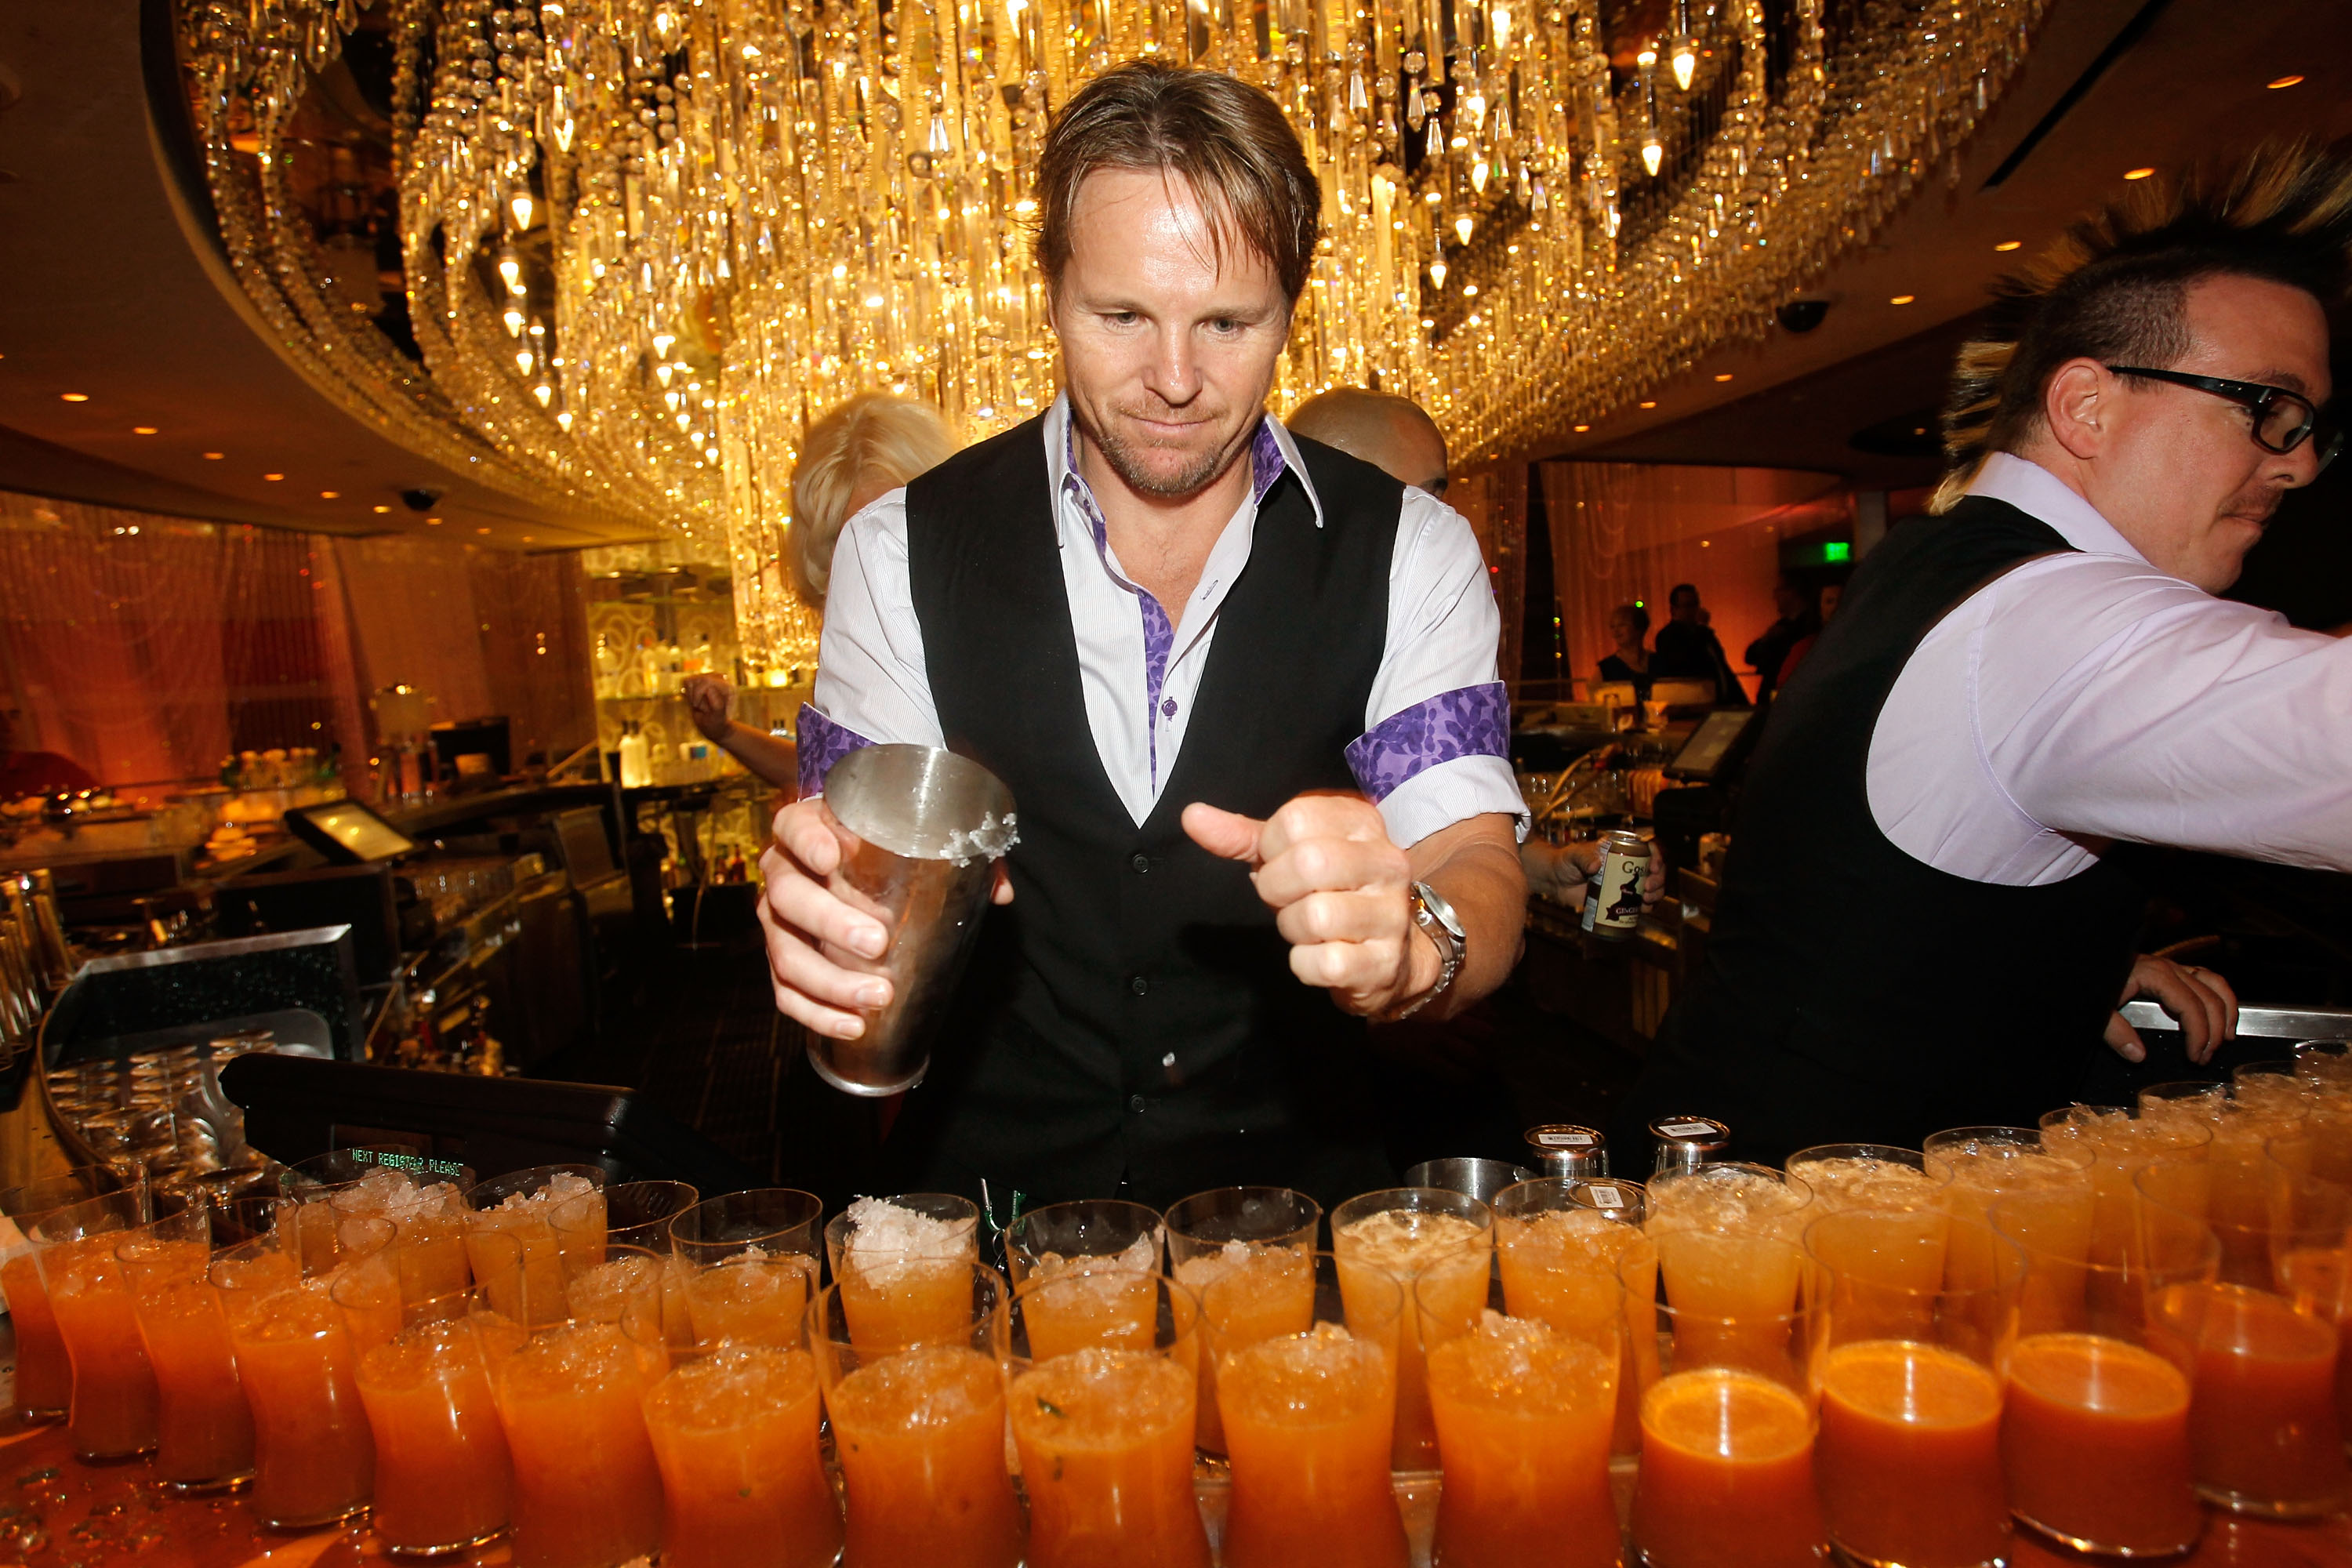 The Cosmopolitan of Las Vegas mixologist serving signature drinks at Uptown/Downtown (photo credit: Isaac Brekken)